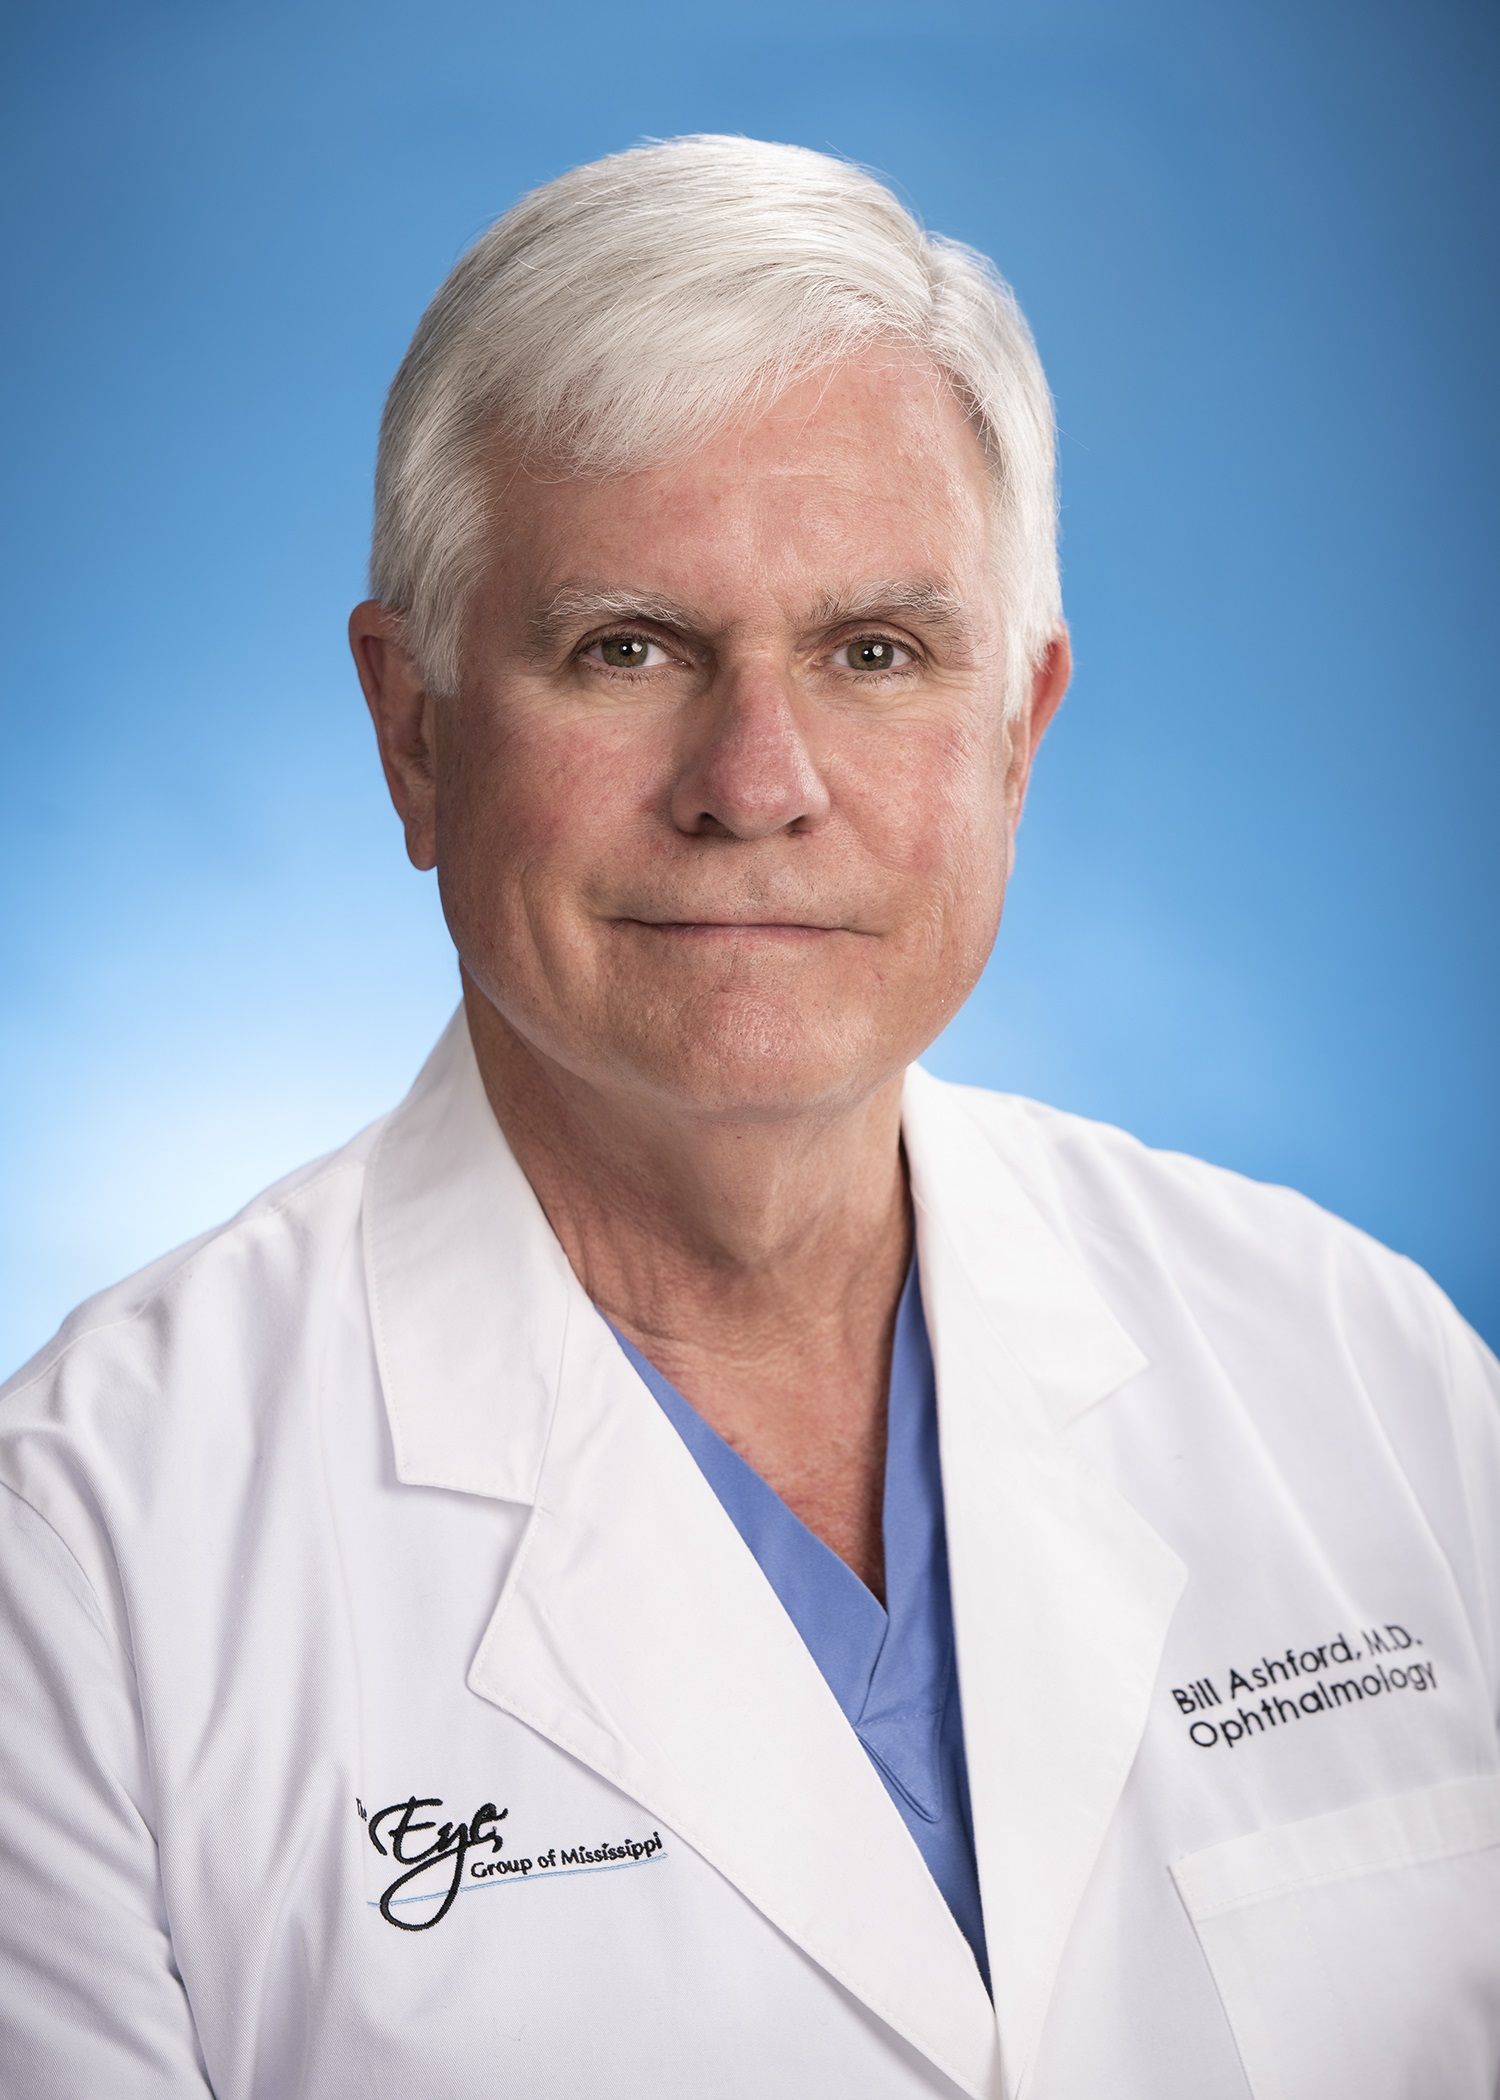 William C. Ashford, M.D.